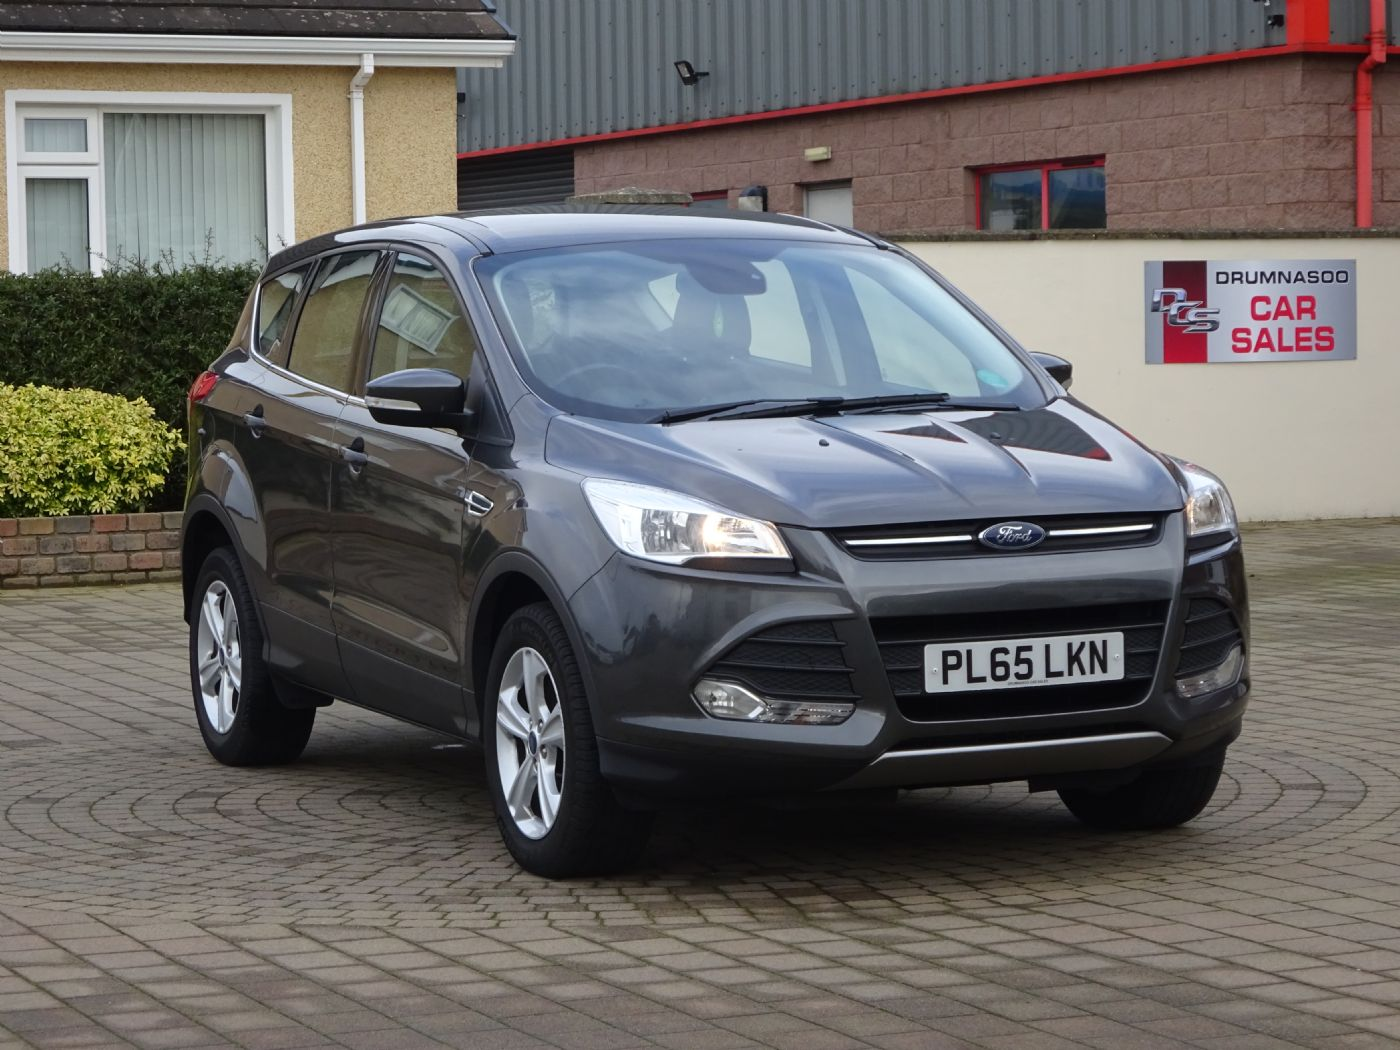 Ford Kuga Zetec 2.0 TDCi 150  Cruise control, Rear parking sensors